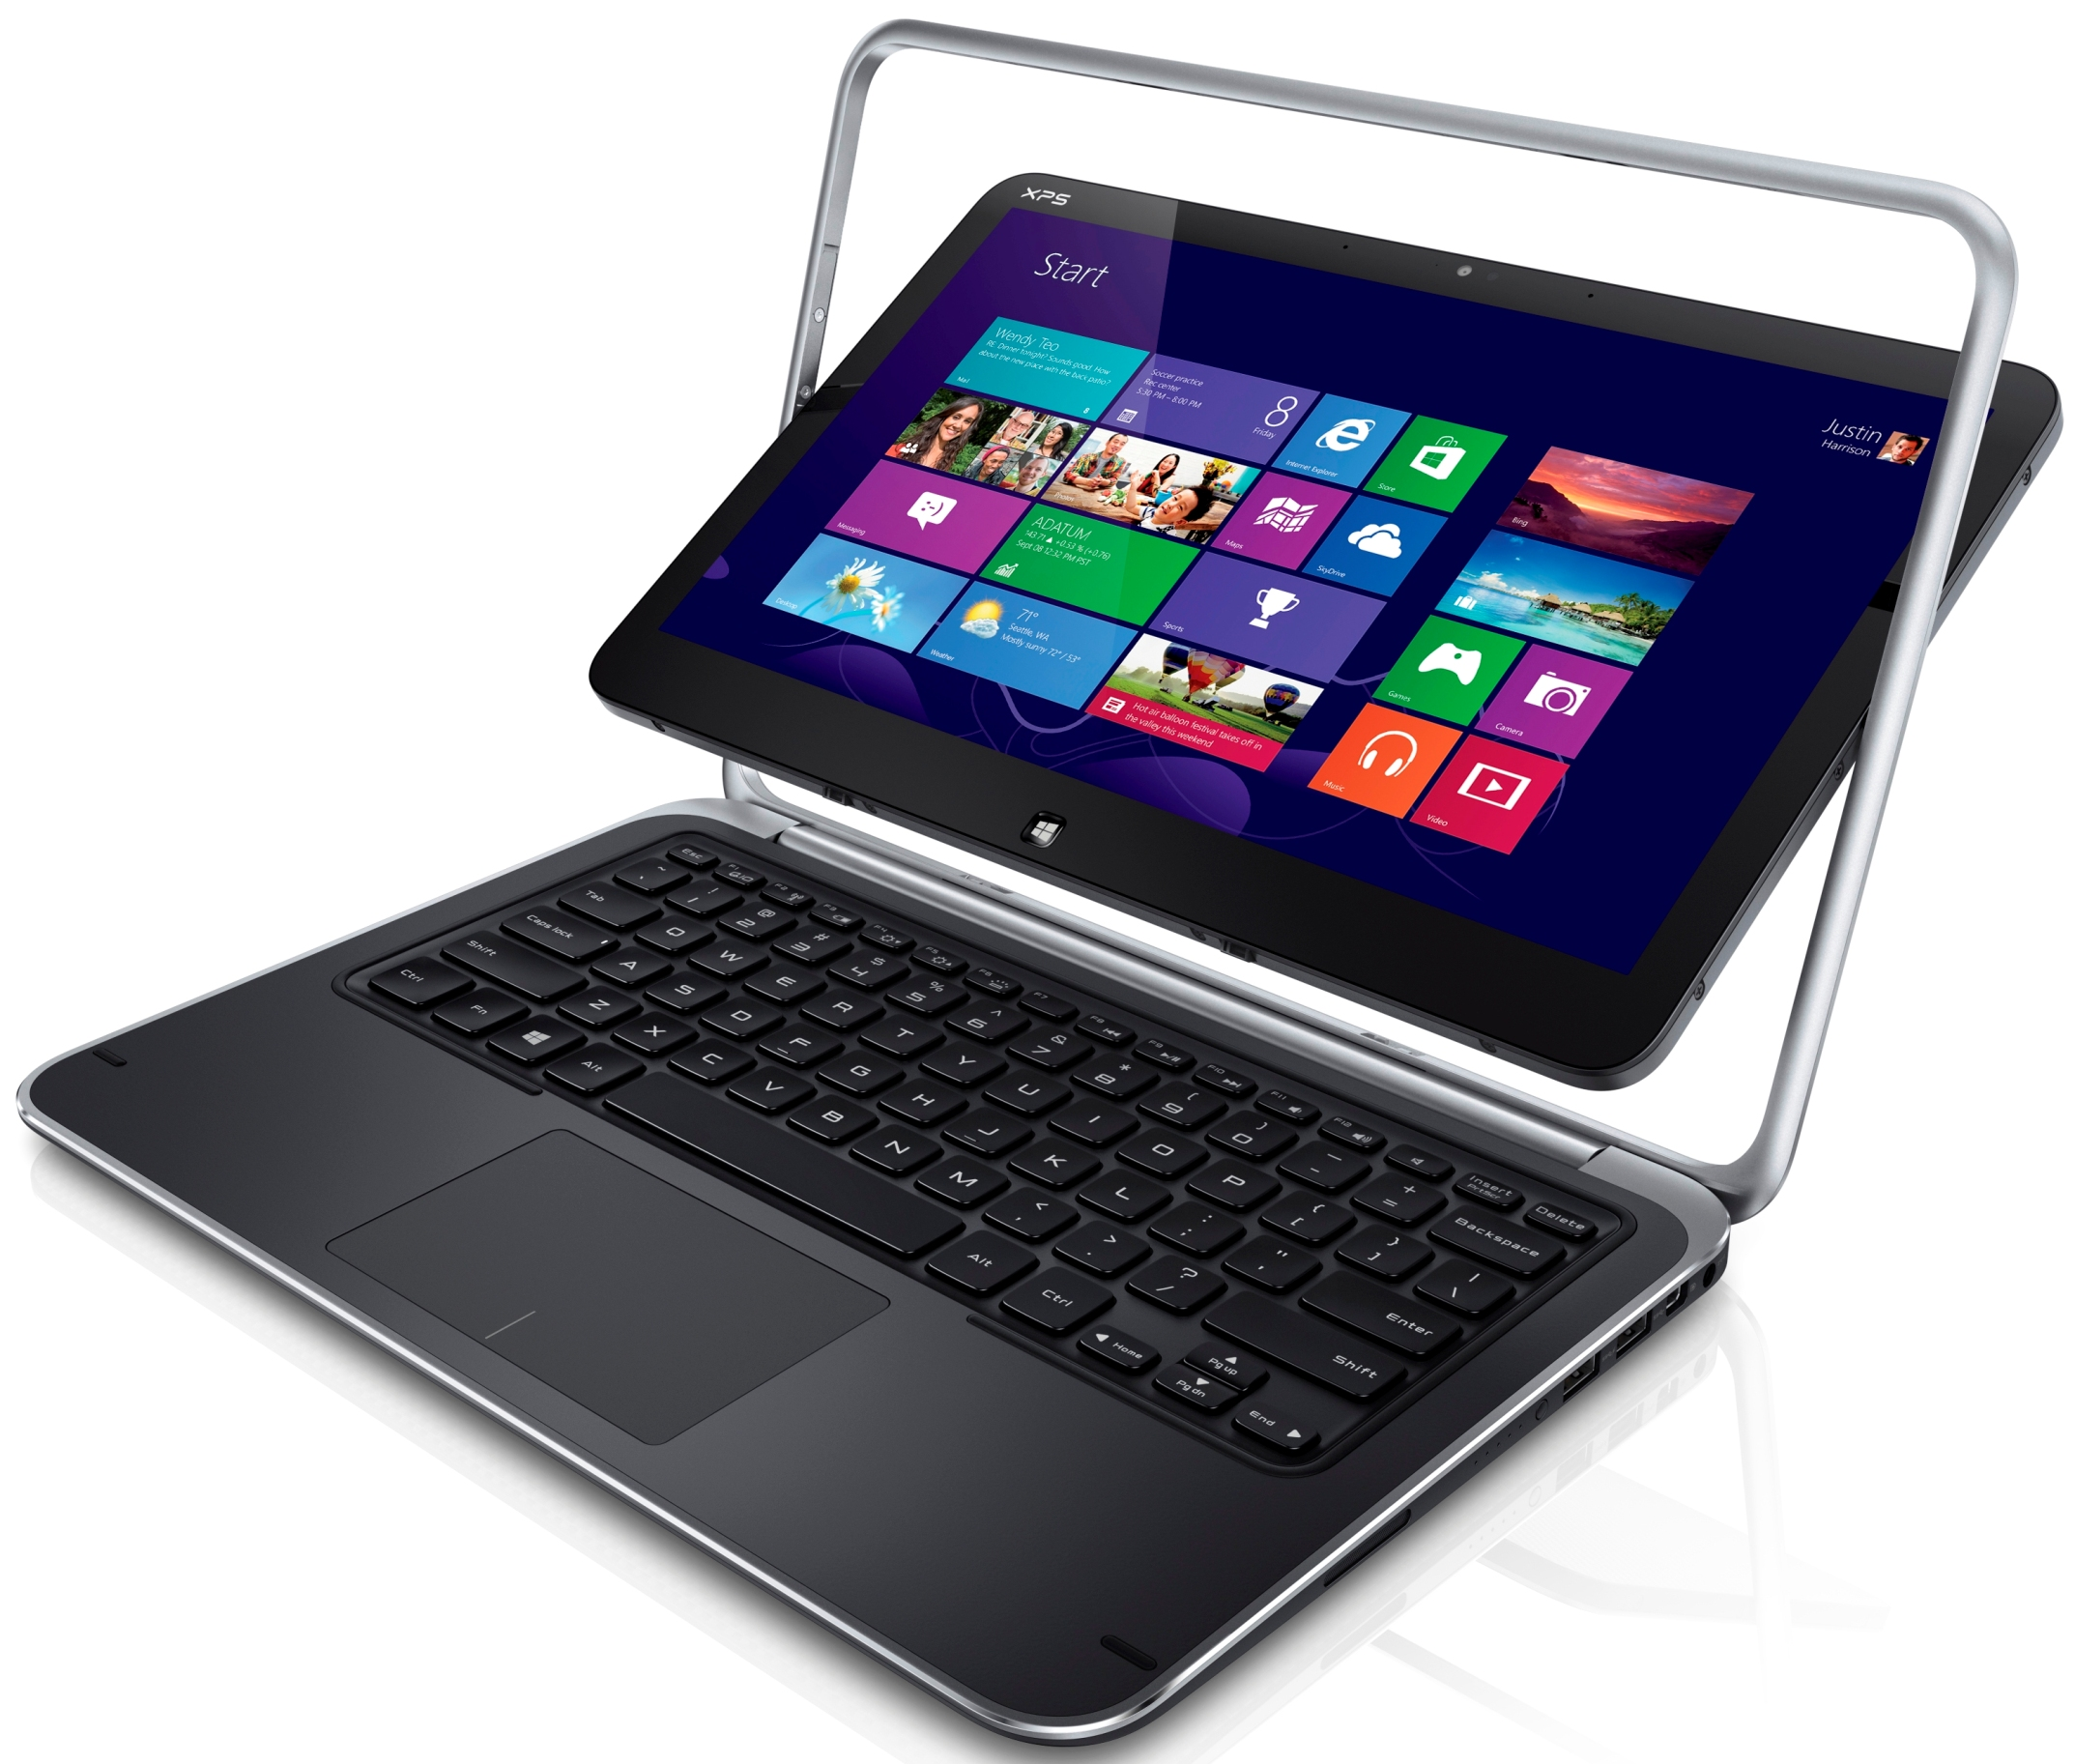 Win 1 of 3 Dell XPS 12 Ultrabook Convertibles or 1 of 15 subscriptions to McAfee LiveSafe